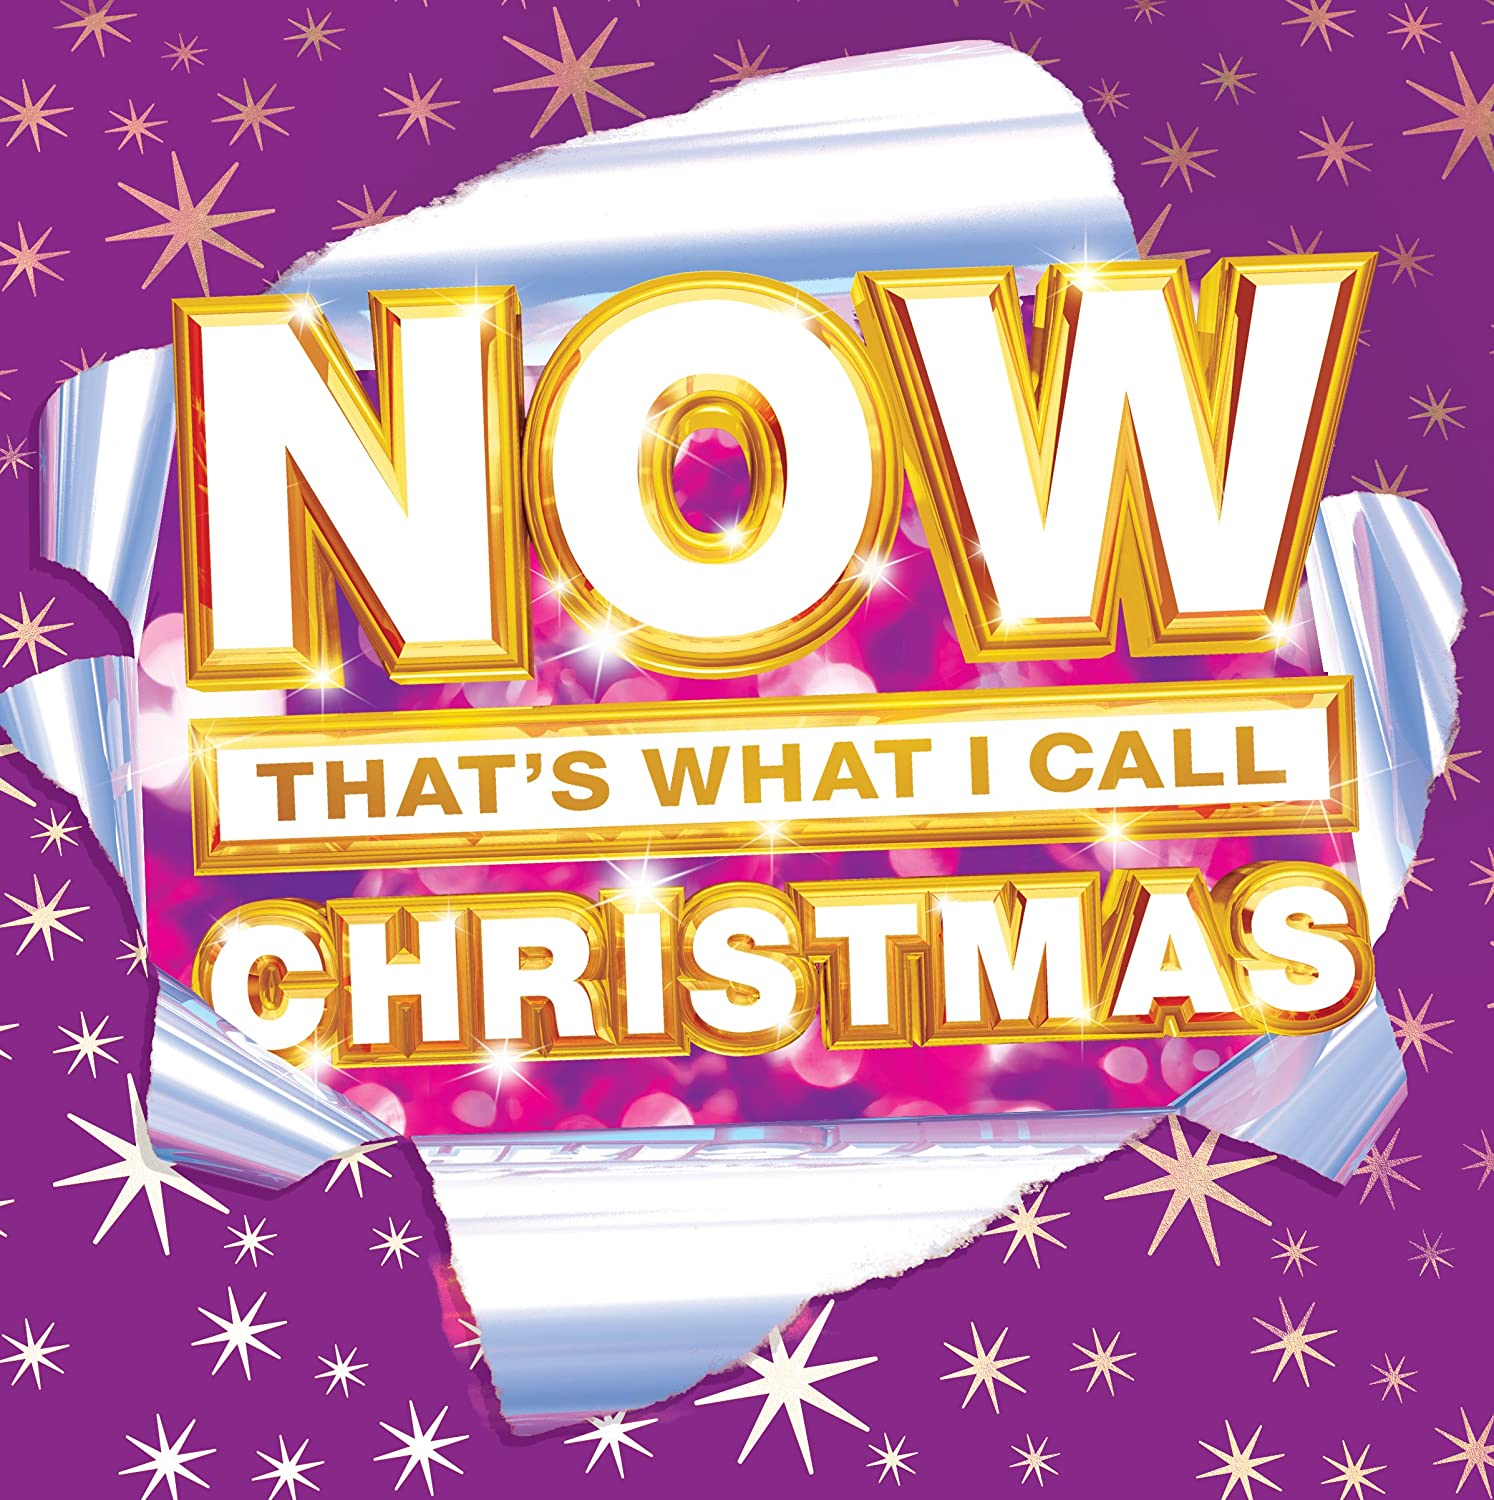 Now That's What I Call Christmas: Amazon.co.uk: Music